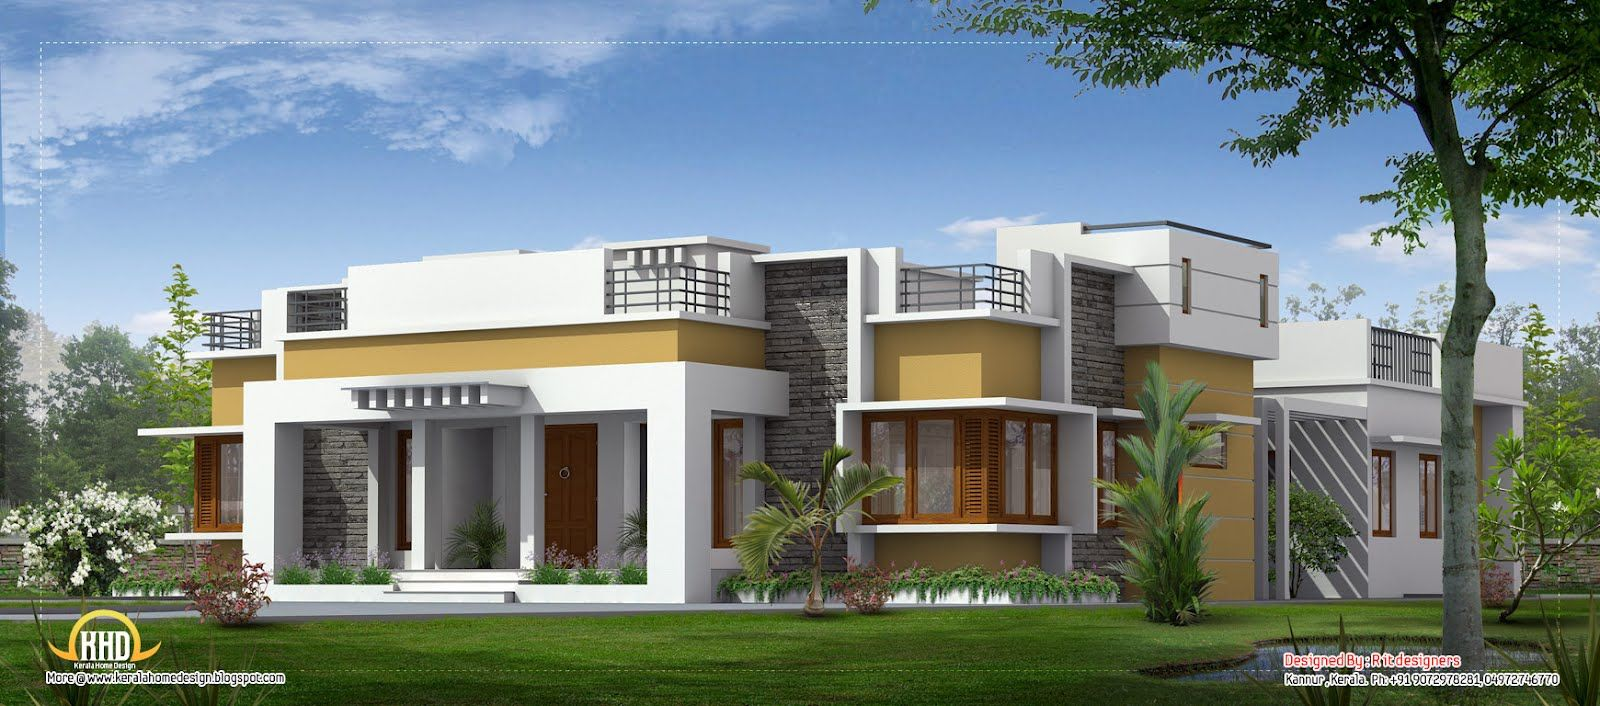 Single Level Designer Home | Single Floor House Plans